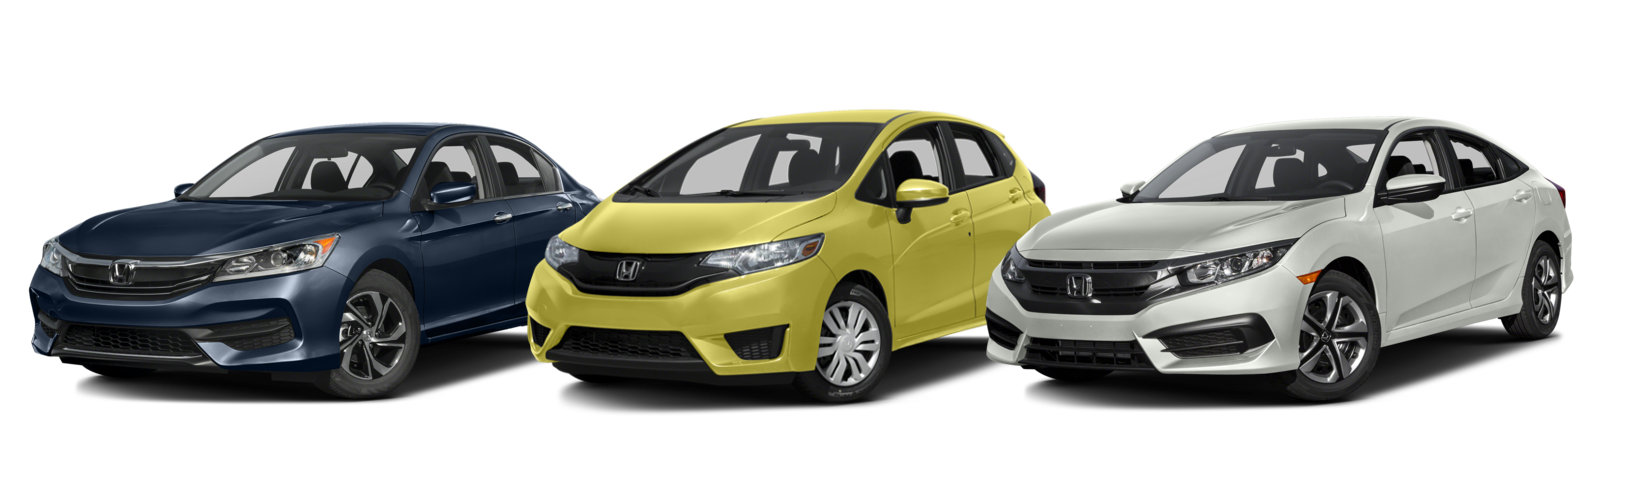 Honda Sedan Hatchback Lineup